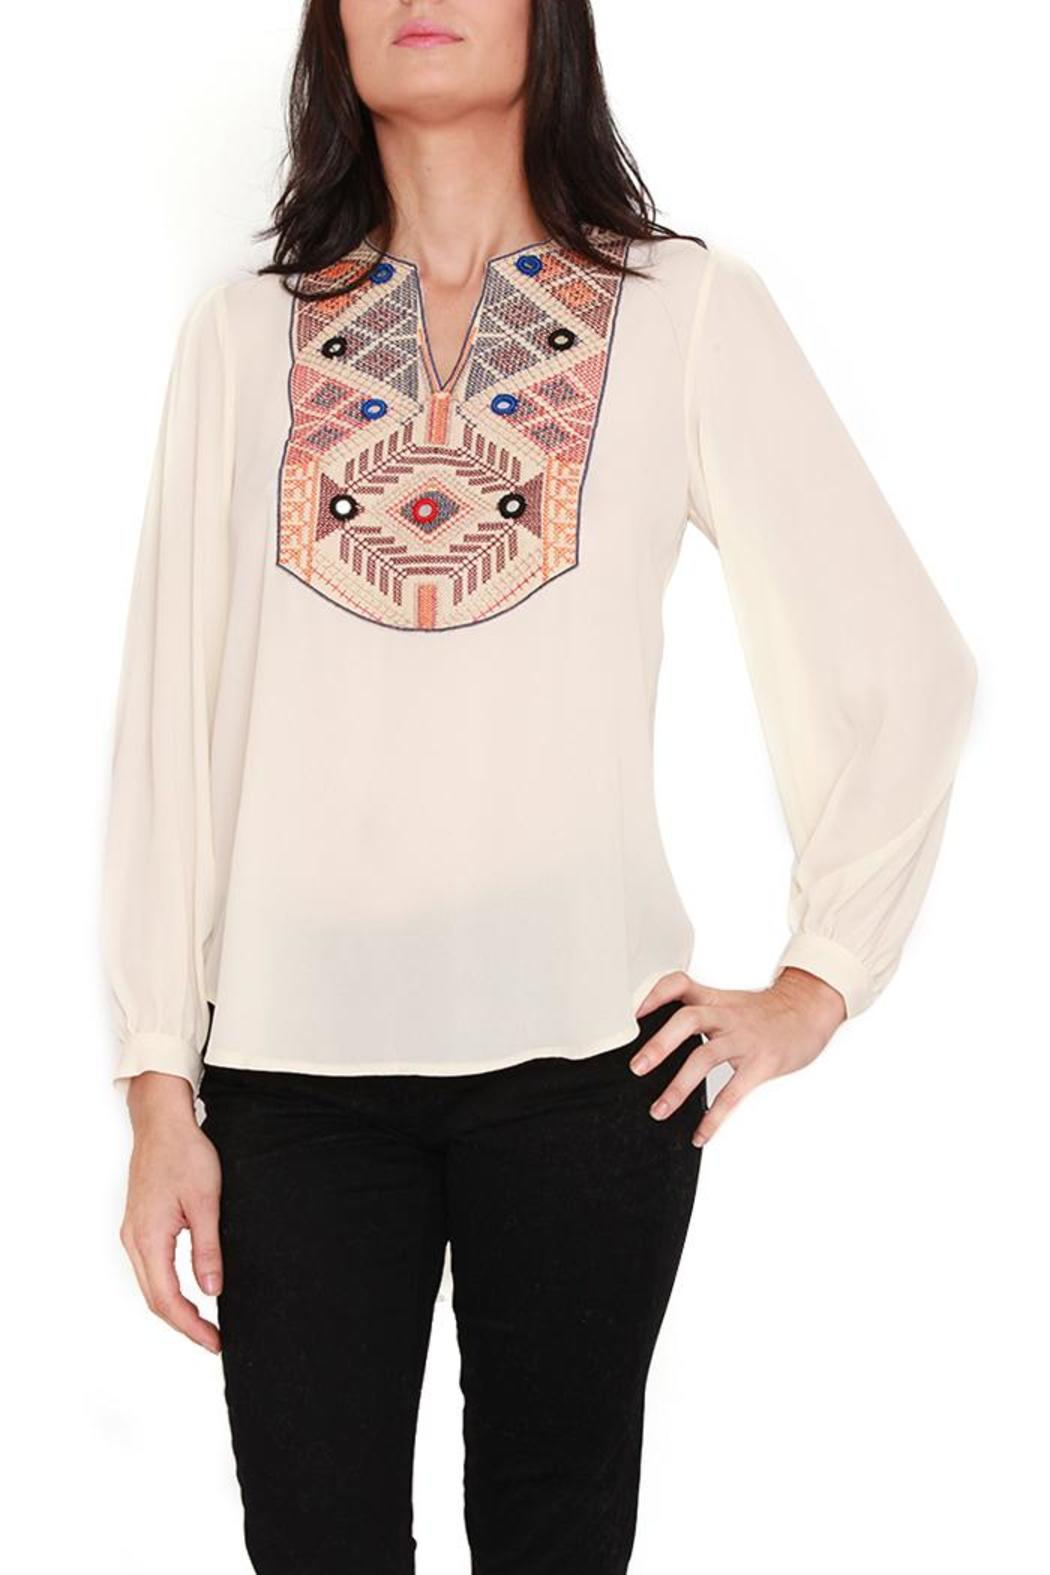 Casting Cross Stitch Embroidered Blouse From Miami Shoptiques